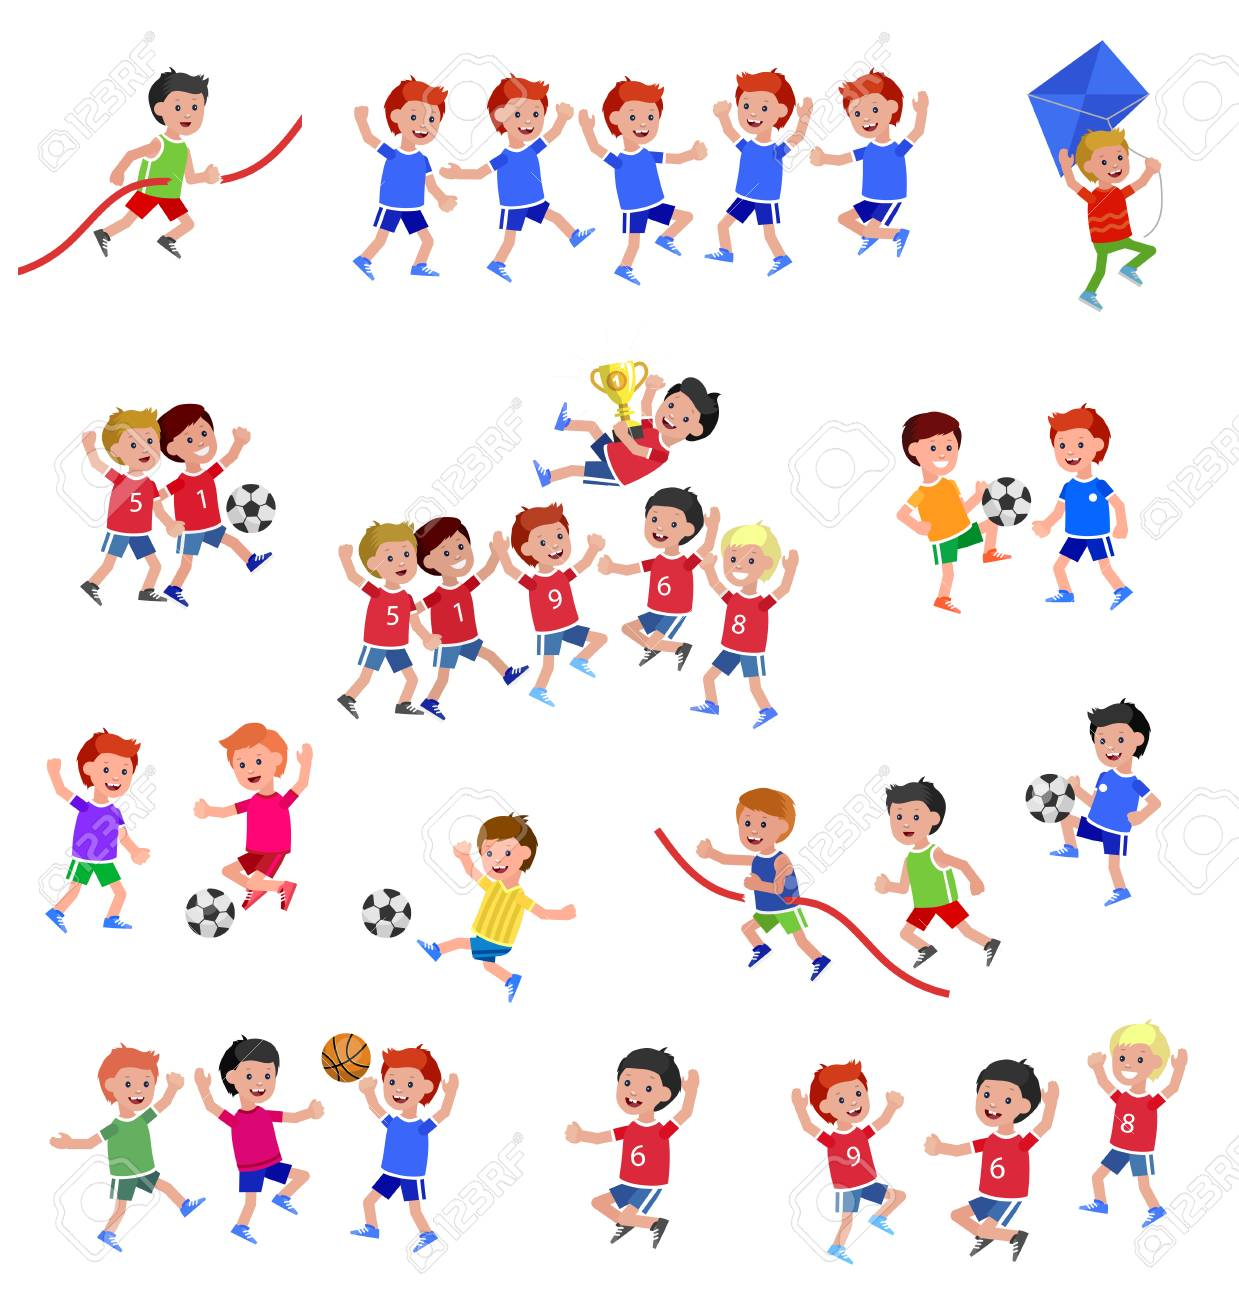 Cute vector character child playing football, basketball, with a kite, runs. Cheerful Happy boy kid illustration - 126353636